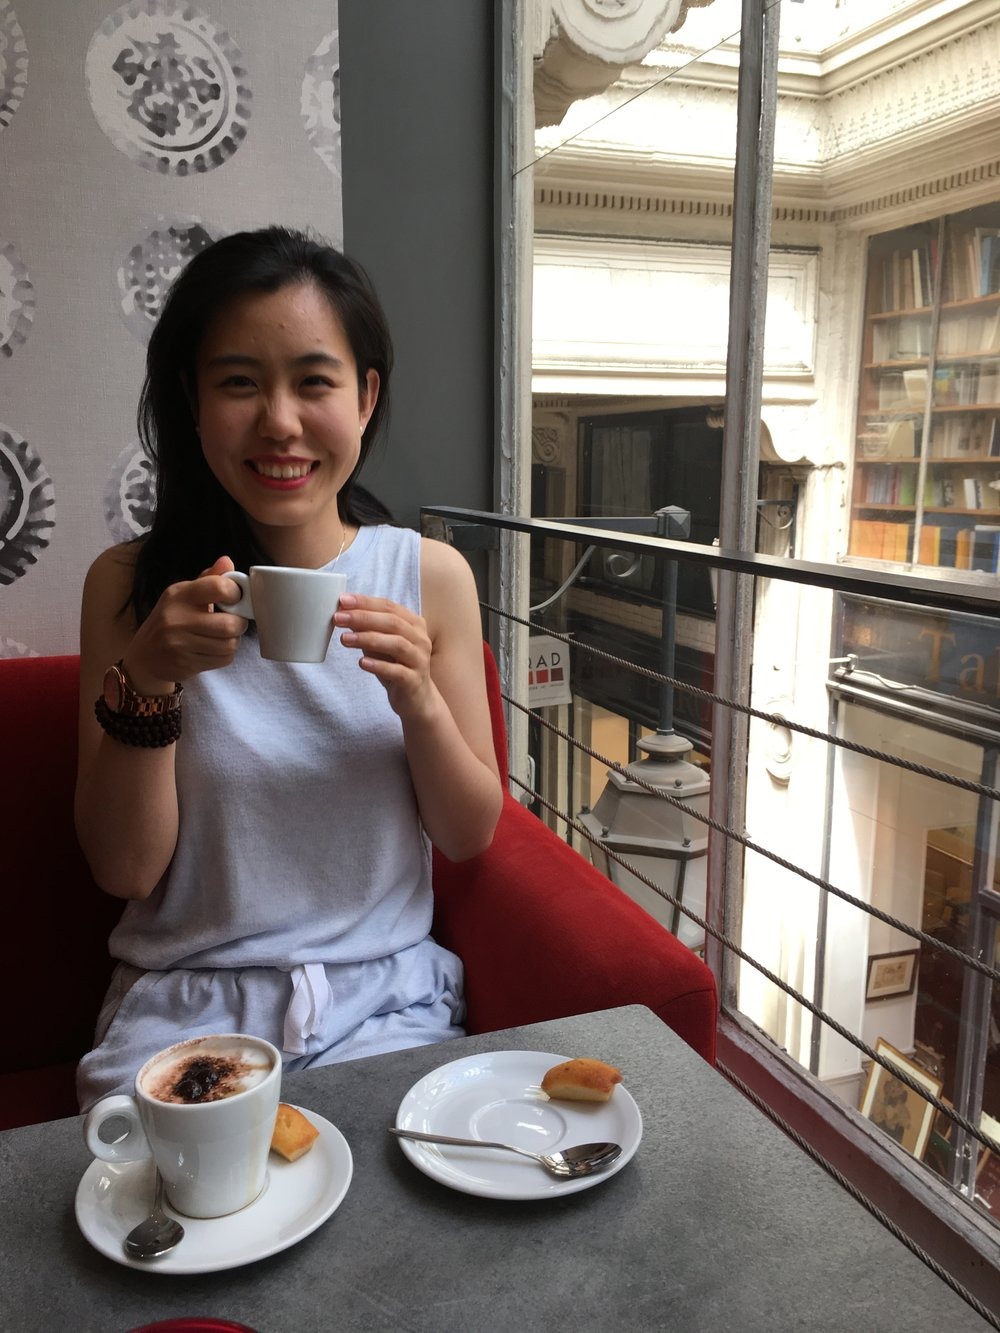 Meet budding art historian and incoming UBC MA student Alice Wang.